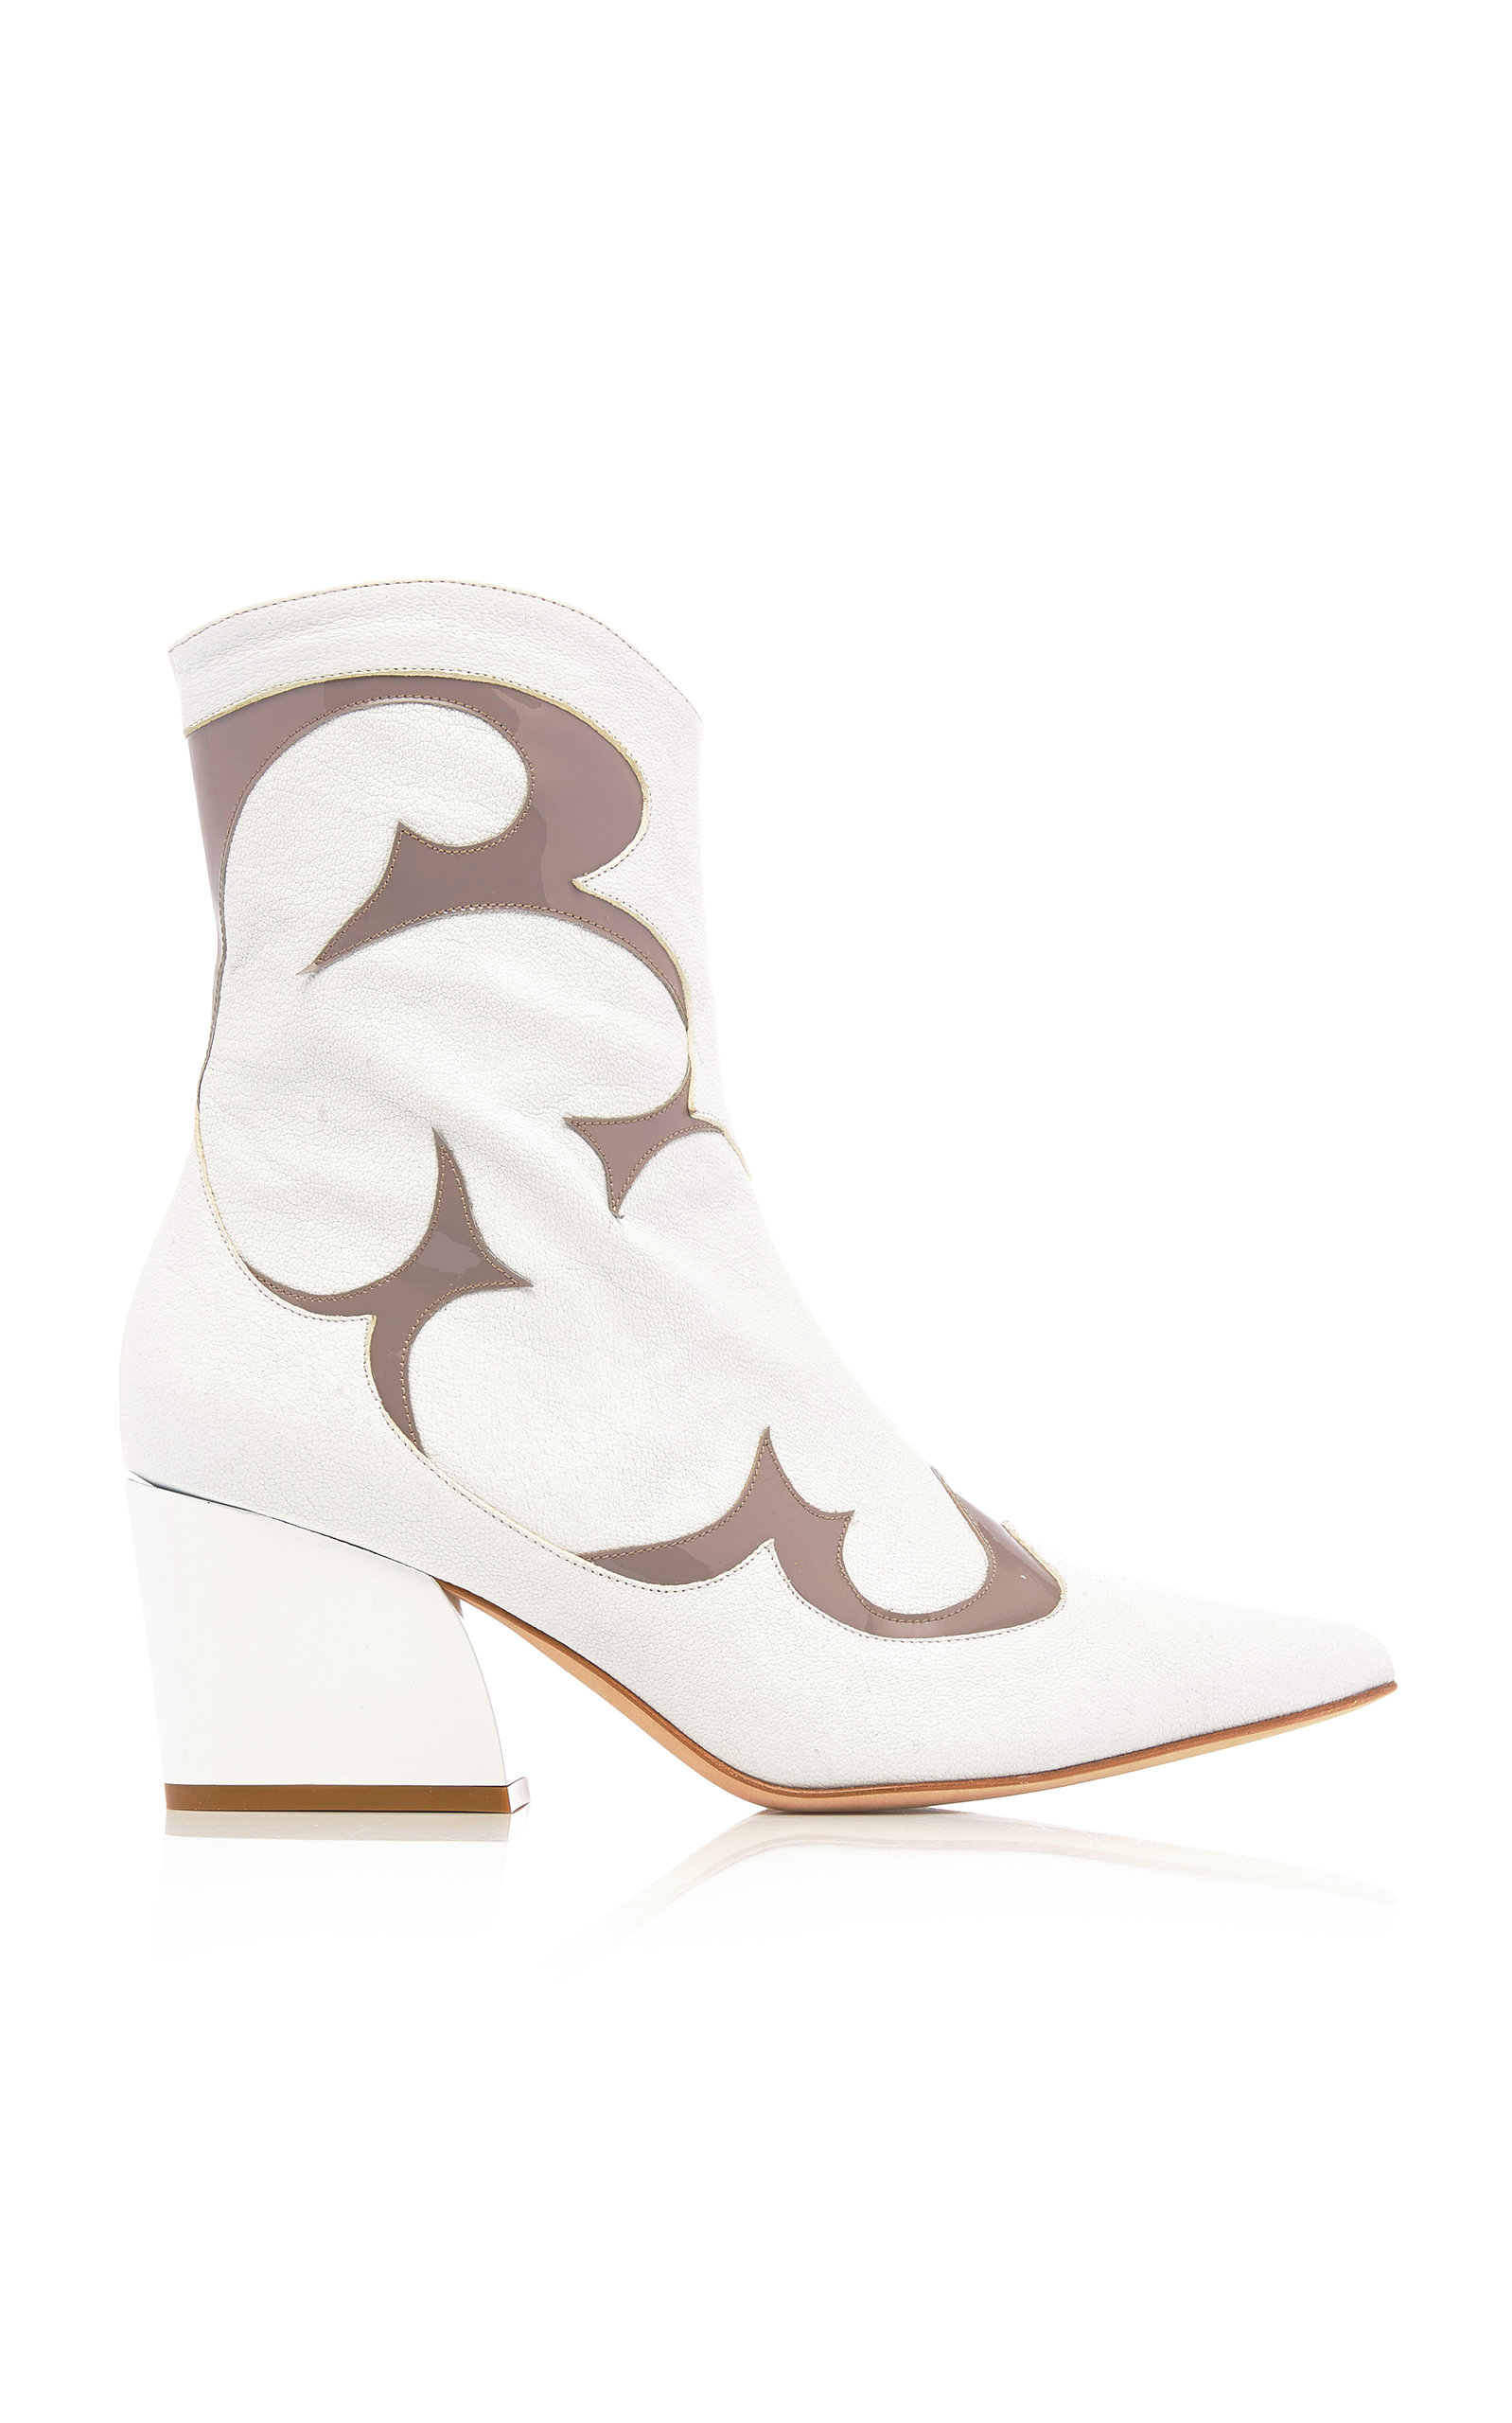 Felix Two-Tone Patent And Textured-Leather Ankle Boots, White